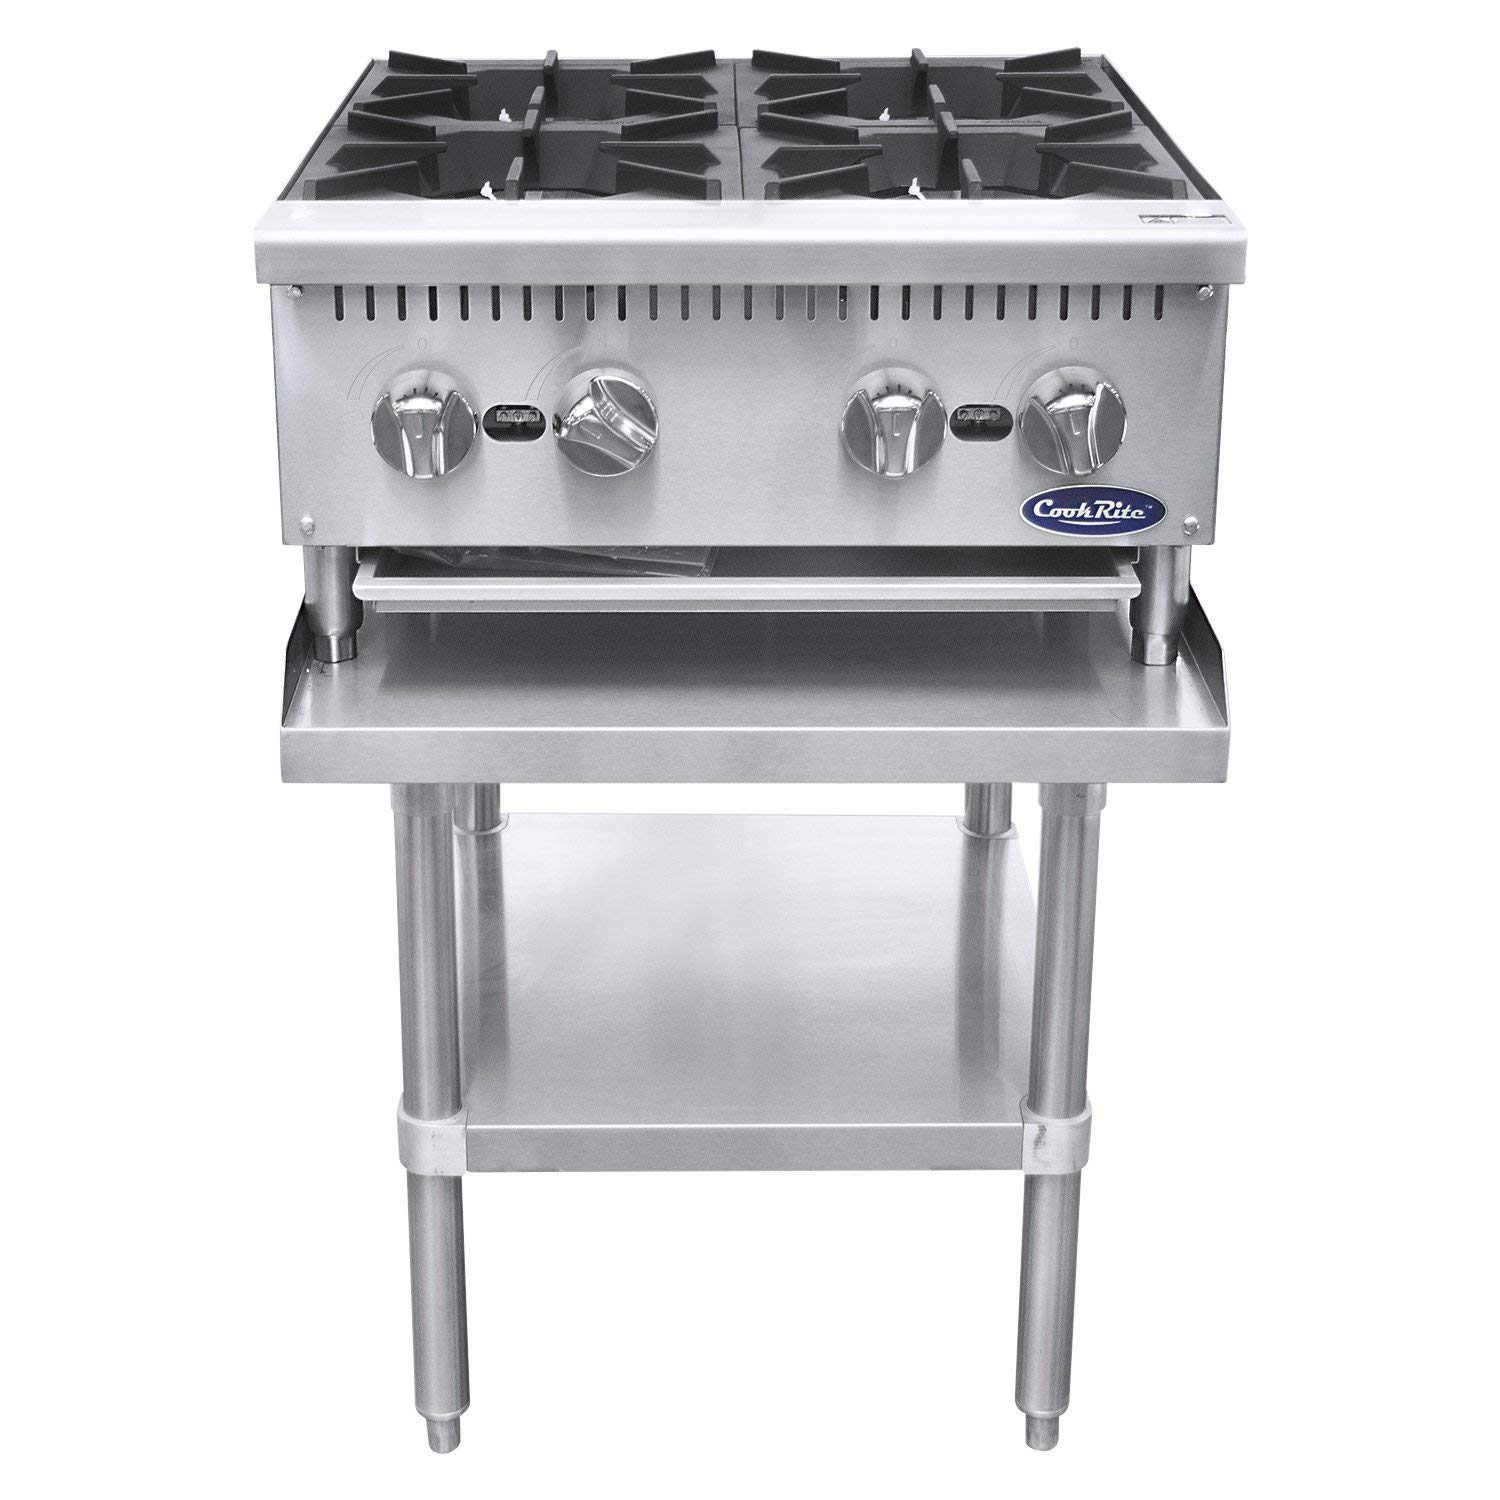 Amazon.com: CookRite Cuatro Quemador Hot Plate Comercial ...